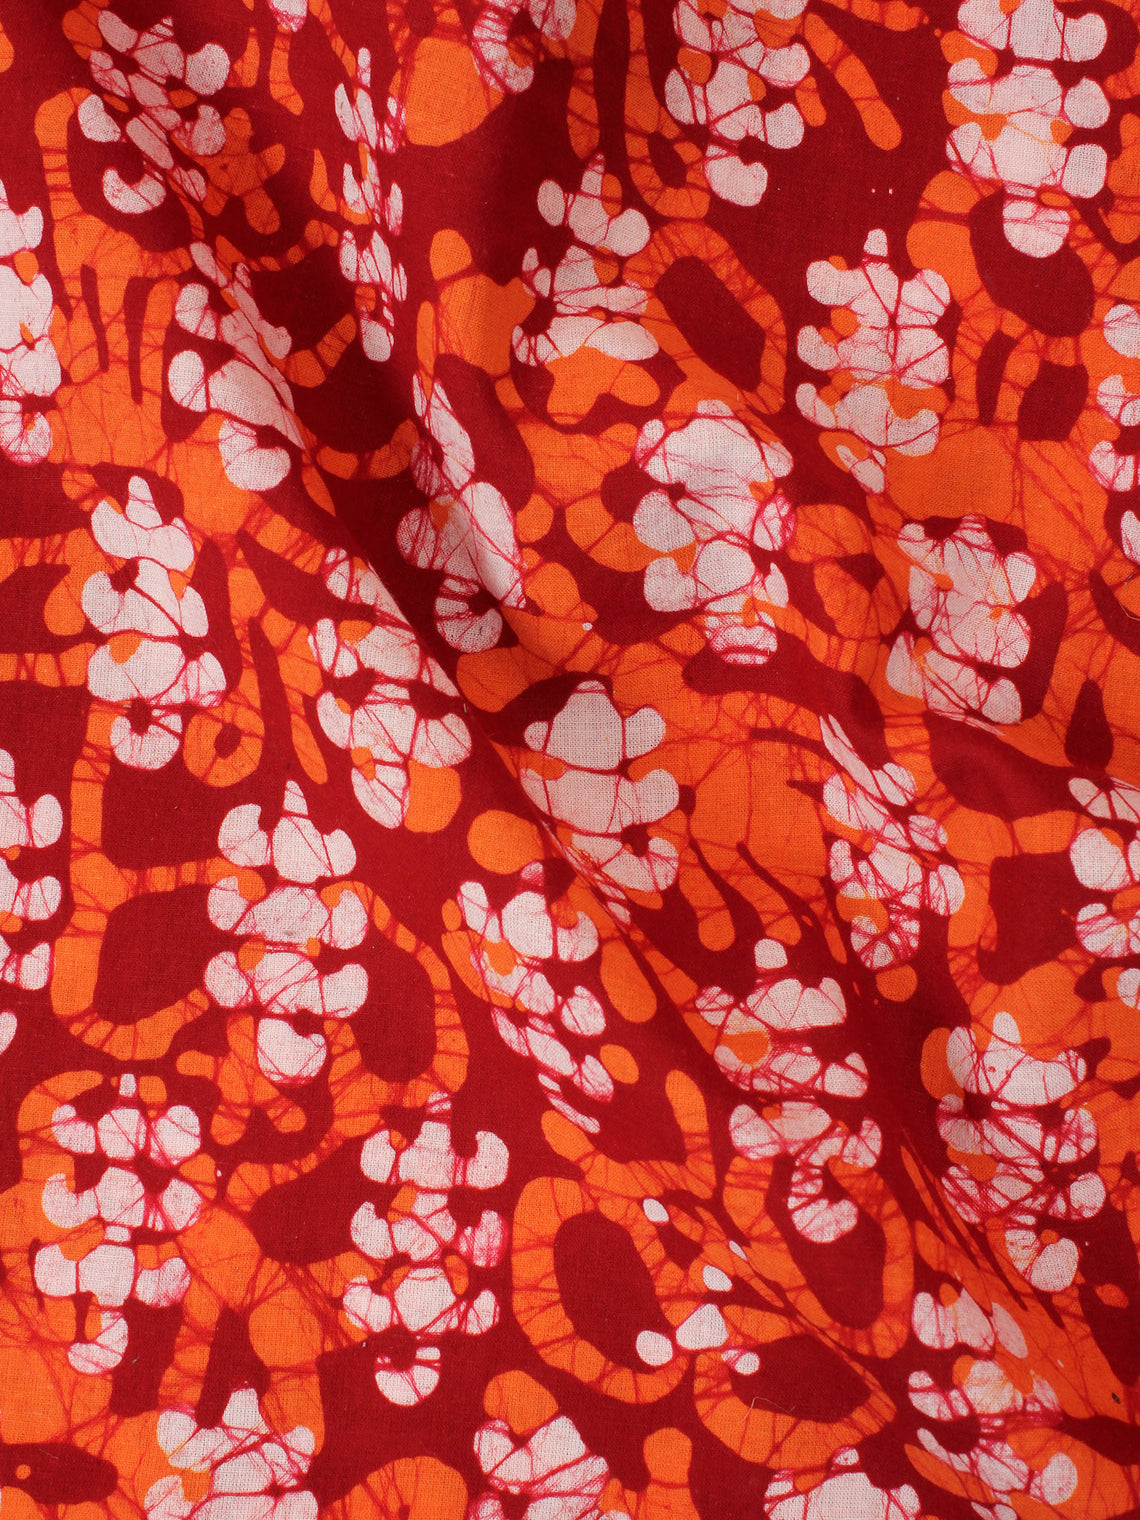 Maroon Pink White Hand Block Printed Cotton Fabric Per Meter - F0916345